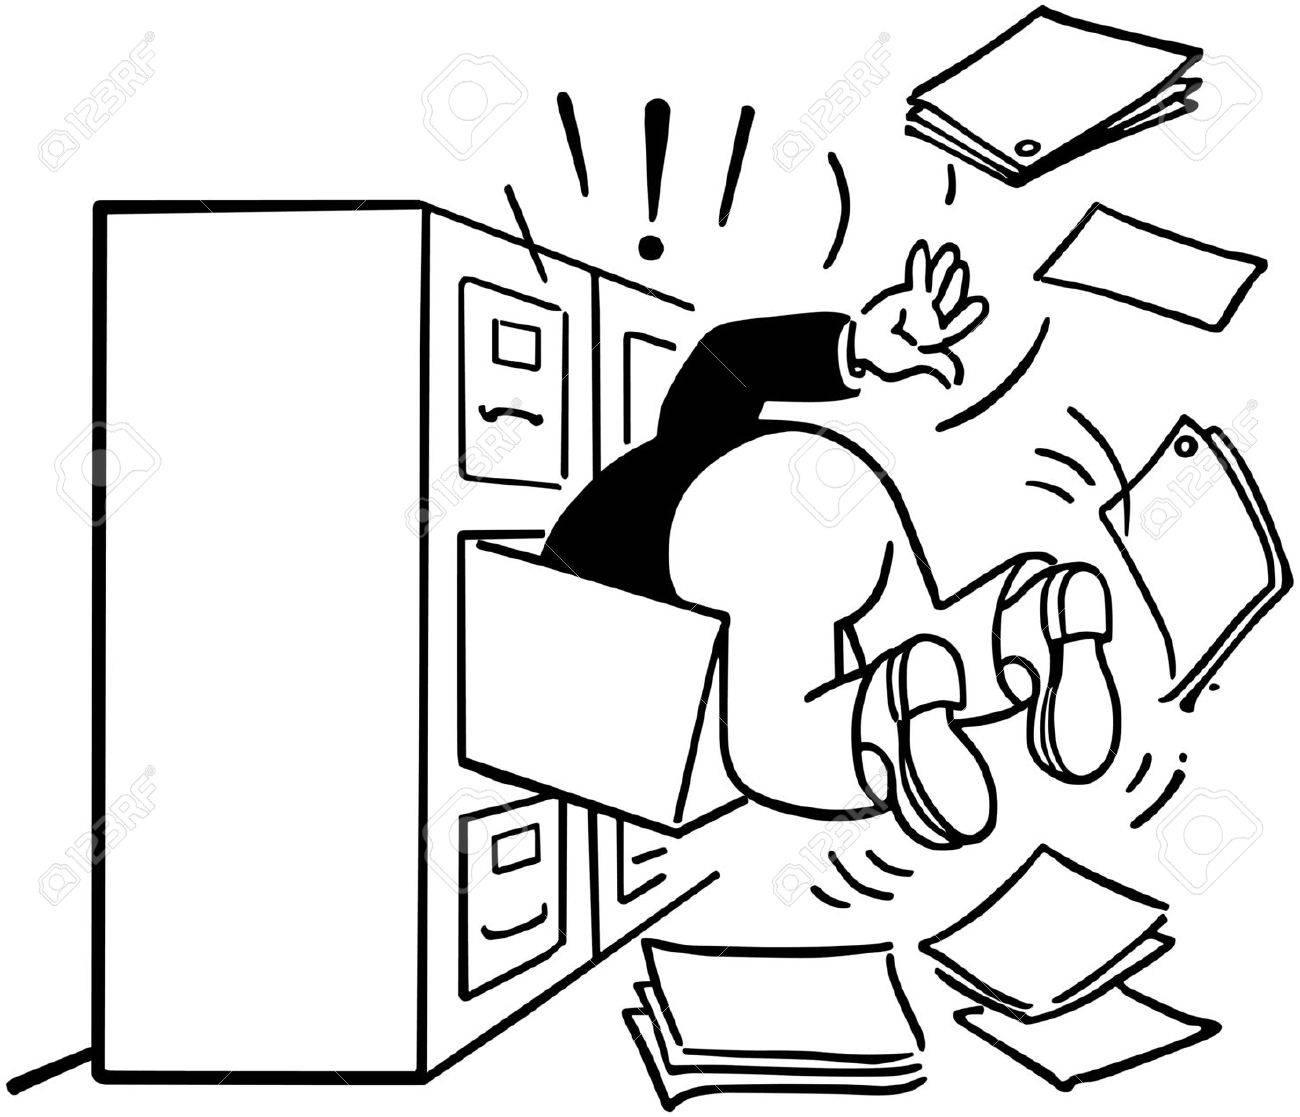 Searching The Filing Cabinet - 28345248